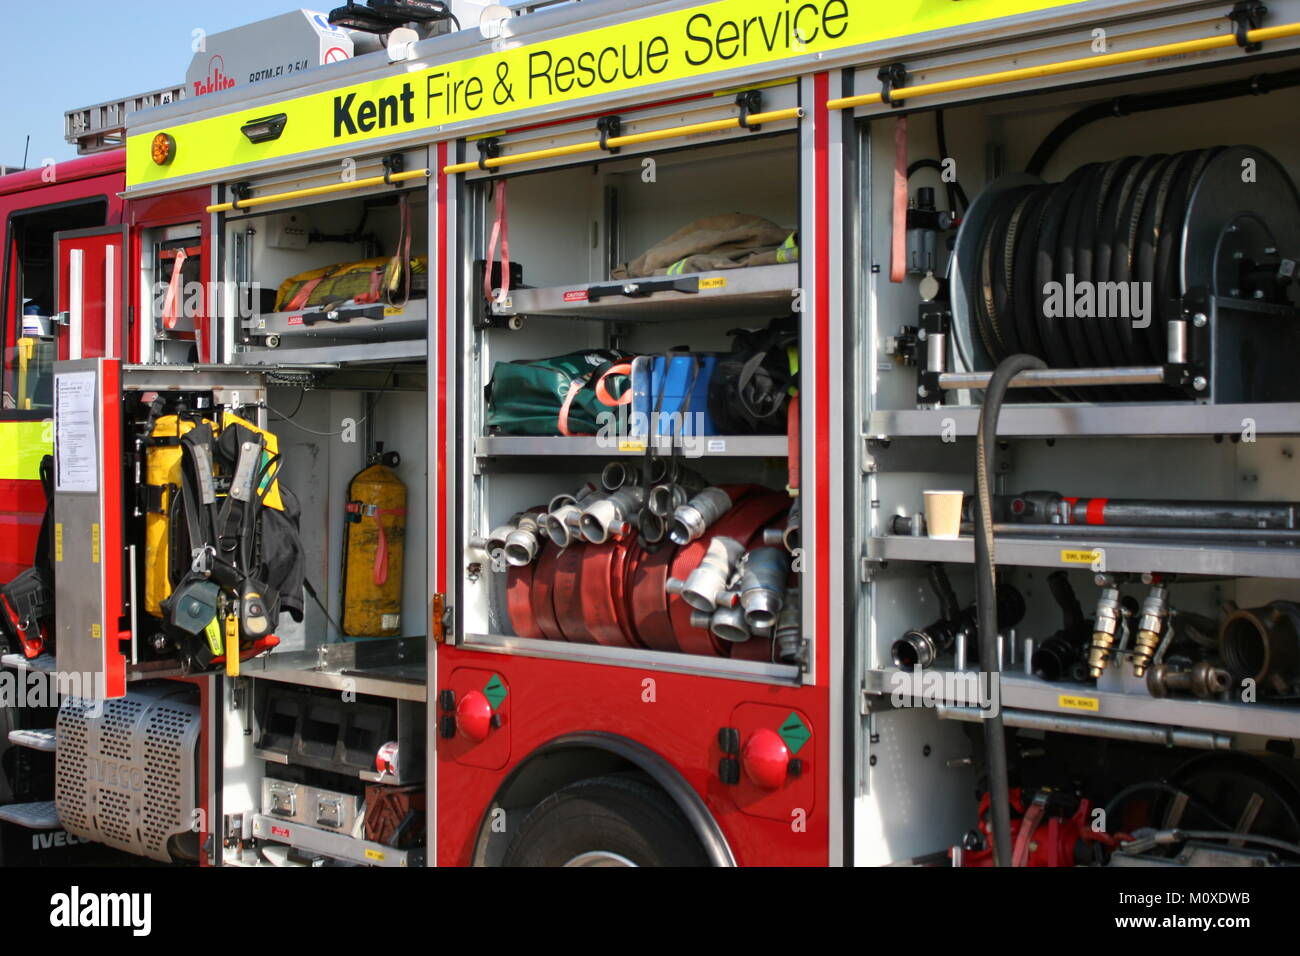 CLOSE UP VIEW OF KENT FIRE & RESCUE SERVICE FIRE TRUCK WITH COMPARTMENTS OPEN SHOWING FIREFIGHTING EQUIPMENT - Stock Image